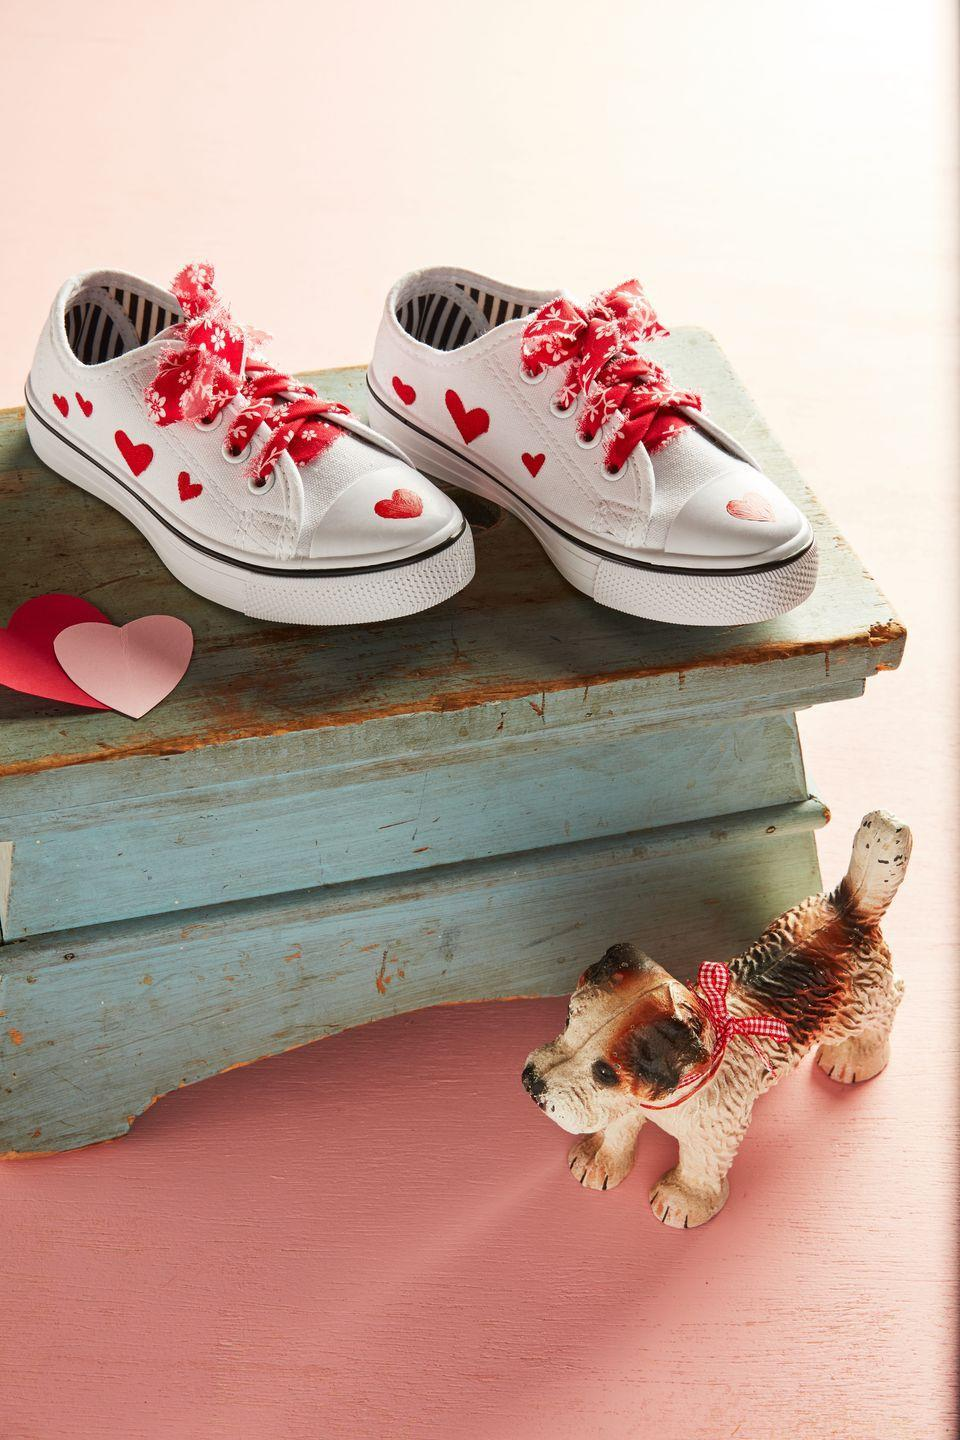 "<p>Kids will strut their stuff this Valentine's Day in DIY decorated sneakers with colorful fabric laces.</p><p><strong>To make:</strong> Use fabric paint to paint hearts on the top and sides of sneakers. Tear a long piece of fabric into thin strips and thread through eyelets. </p><p><a class=""link rapid-noclick-resp"" href=""https://www.amazon.com/Jacquard-Products-Textile-Fabric-2-25-Ounce/dp/B0006IK268/ref=sr_1_3?tag=syn-yahoo-20&ascsubtag=%5Bartid%7C10050.g.1584%5Bsrc%7Cyahoo-us"" rel=""nofollow noopener"" target=""_blank"" data-ylk=""slk:SHOP FABRIC PAINT"">SHOP FABRIC PAINT</a></p>"